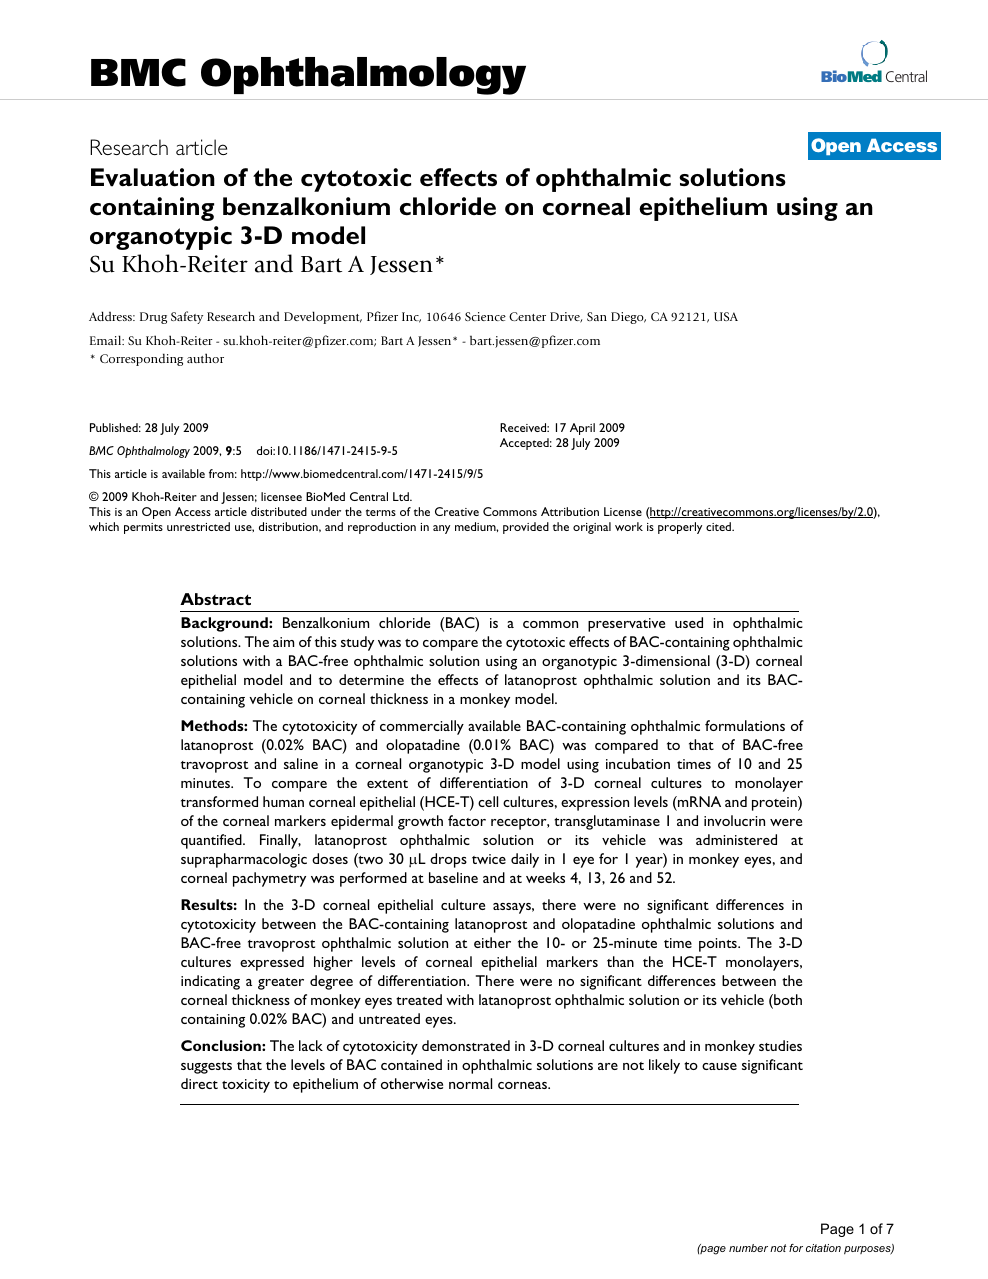 Evaluation of the cytotoxic effects of ophthalmic solutions